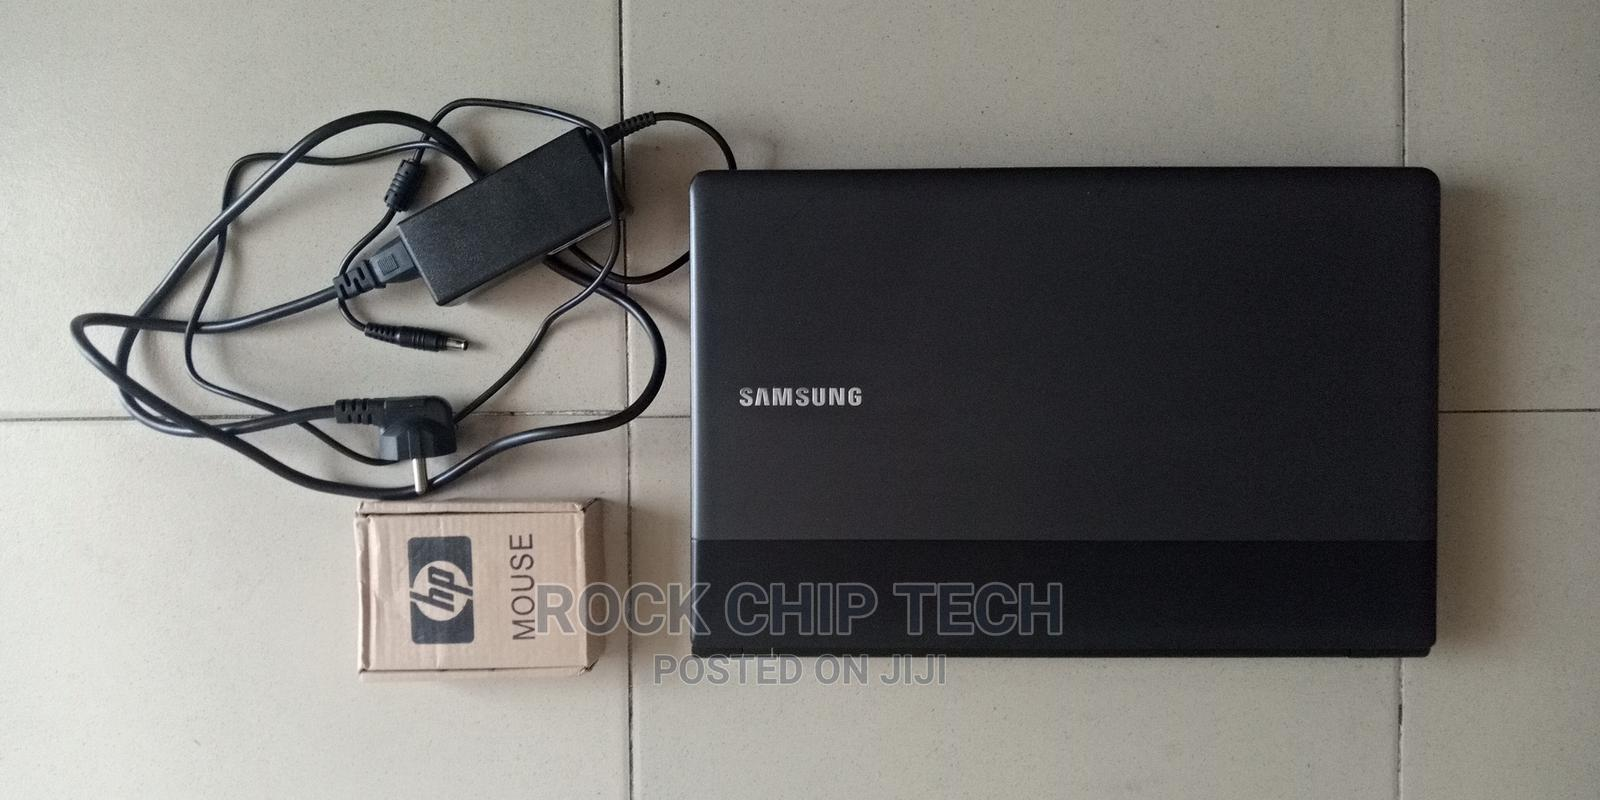 Laptop Samsung NP300E5C 8GB Intel Core I7 HDD 500GB | Laptops & Computers for sale in Aba North, Abia State, Nigeria